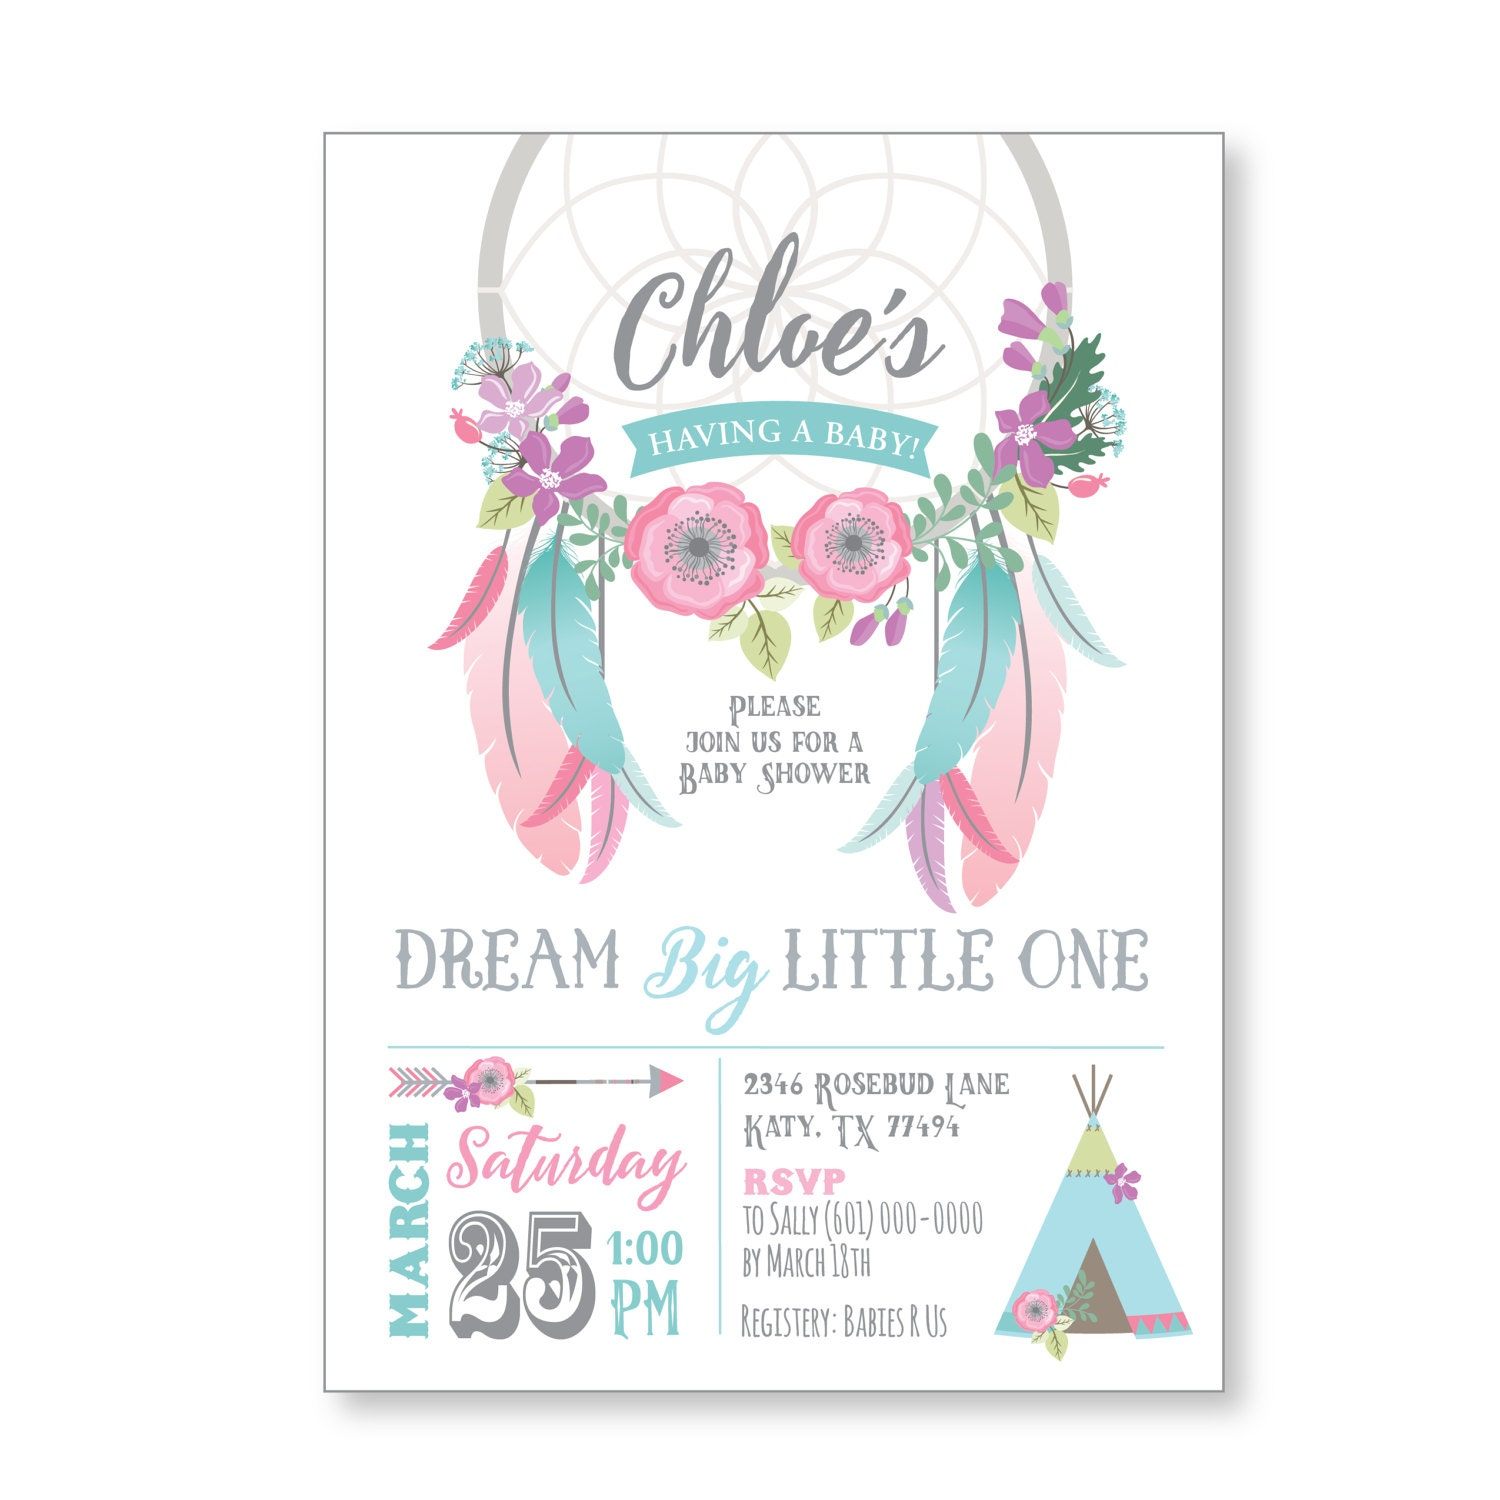 Sweet 16 Invitations Free as great invitations example